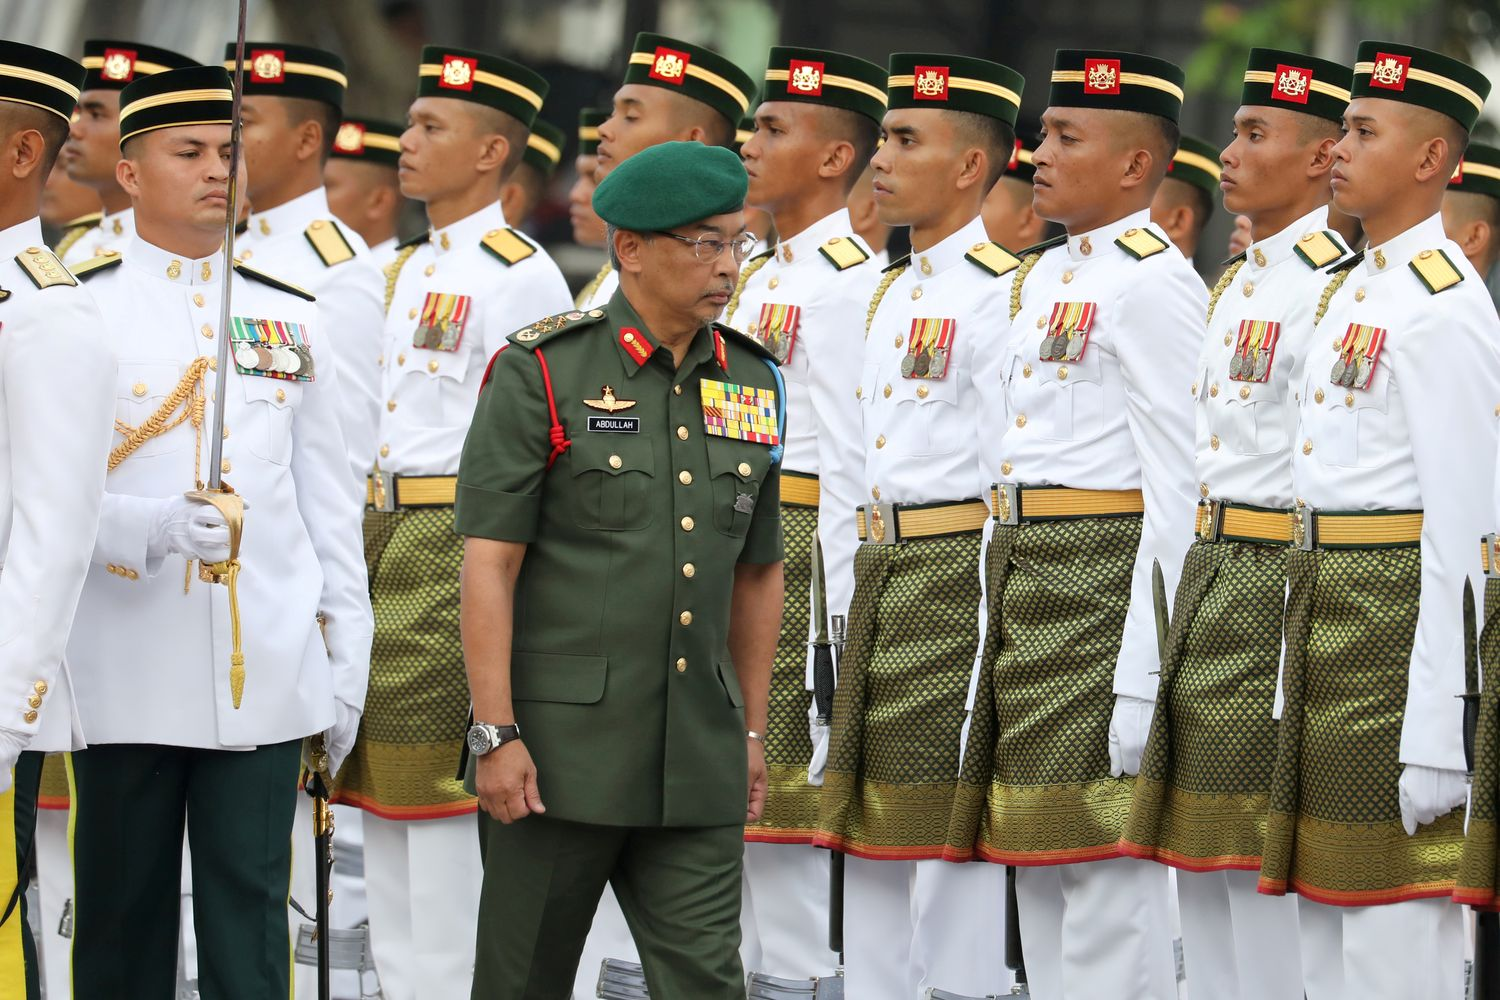 Malaysia's King, Al-Sultan Abdullah inspects a guard of honour during the 62nd Independence Day celebrations in Putrajaya, Malaysia, last August. (Reuters photo)